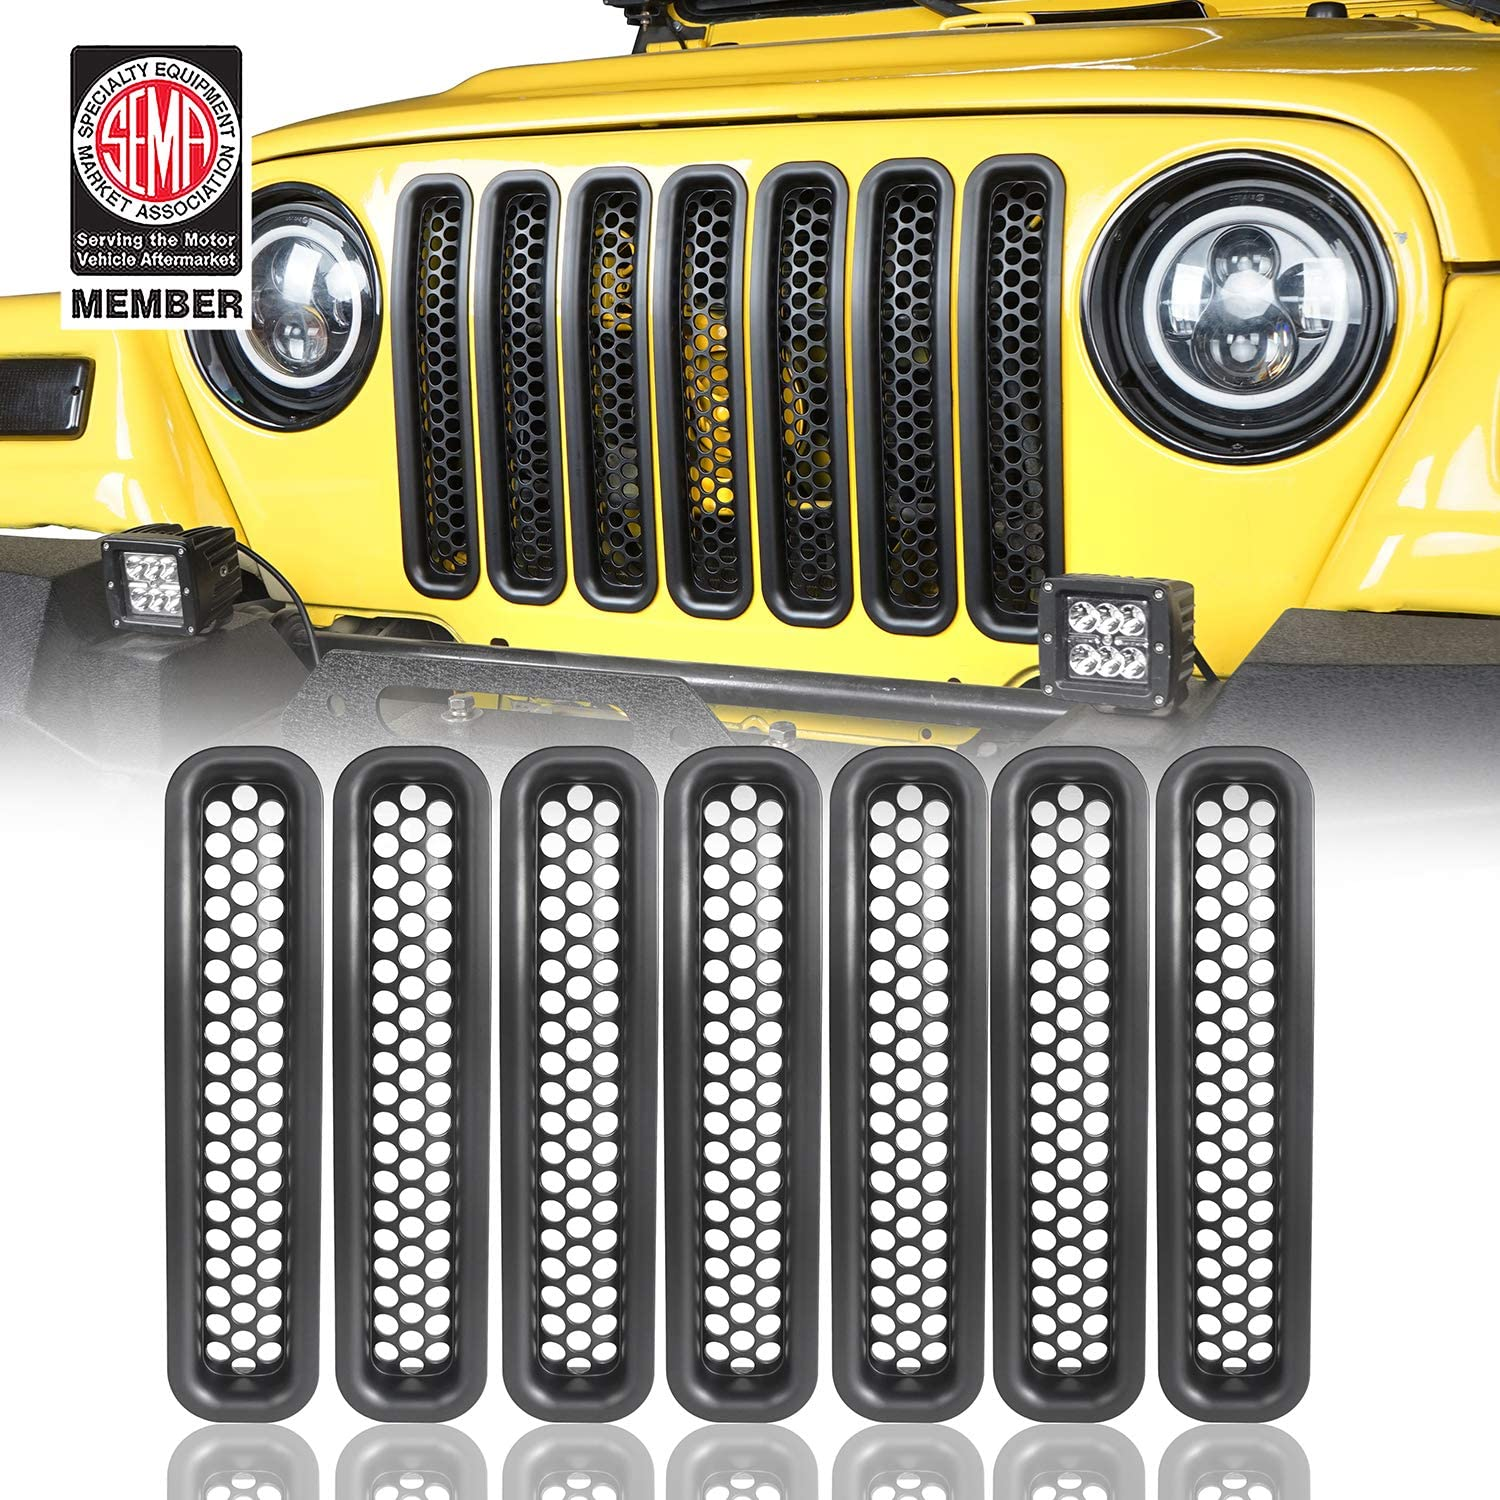 Pack of 7 Black Front Grille Mesh Inserts for 1997-2006 Jeep Wrangler TJ /& Unlimited